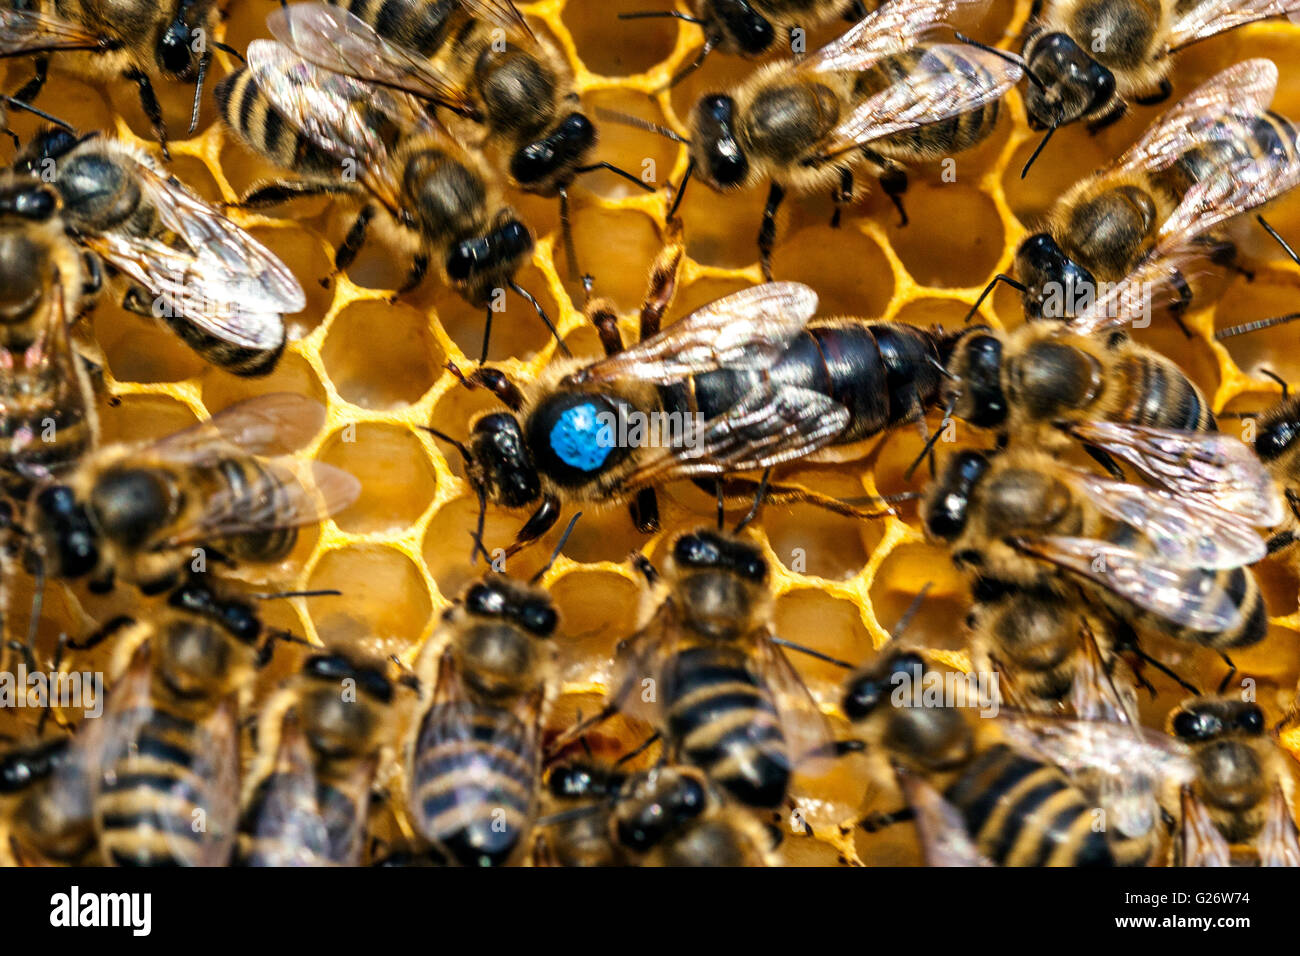 Bee queen, marked and surrounded by worker bees - Stock Image